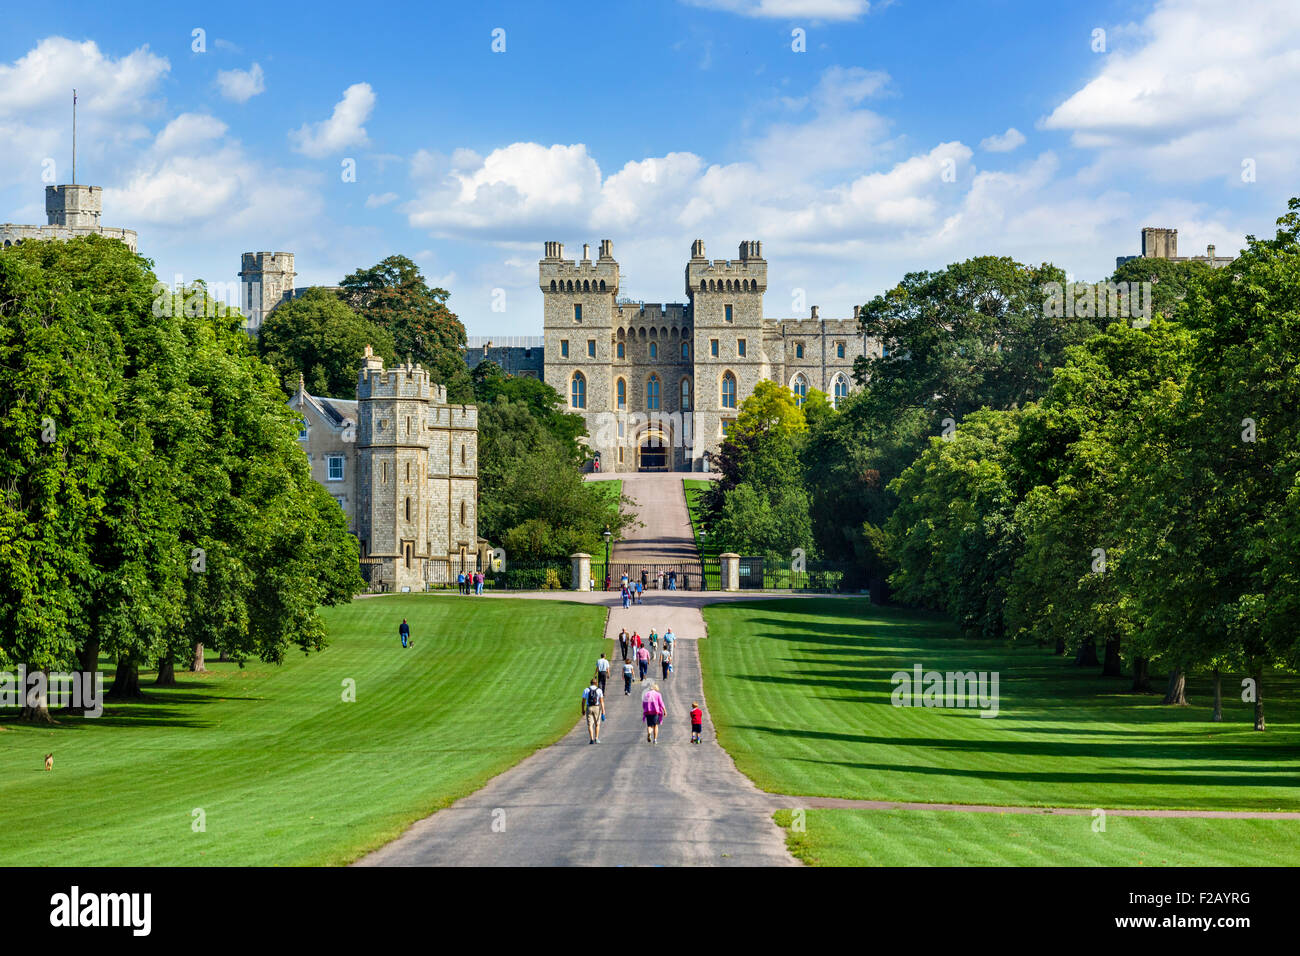 Walkers on the Long Walk with Windsor Castle in the distance, Windsor Great Park, Berkshire, England, UK - Stock Image